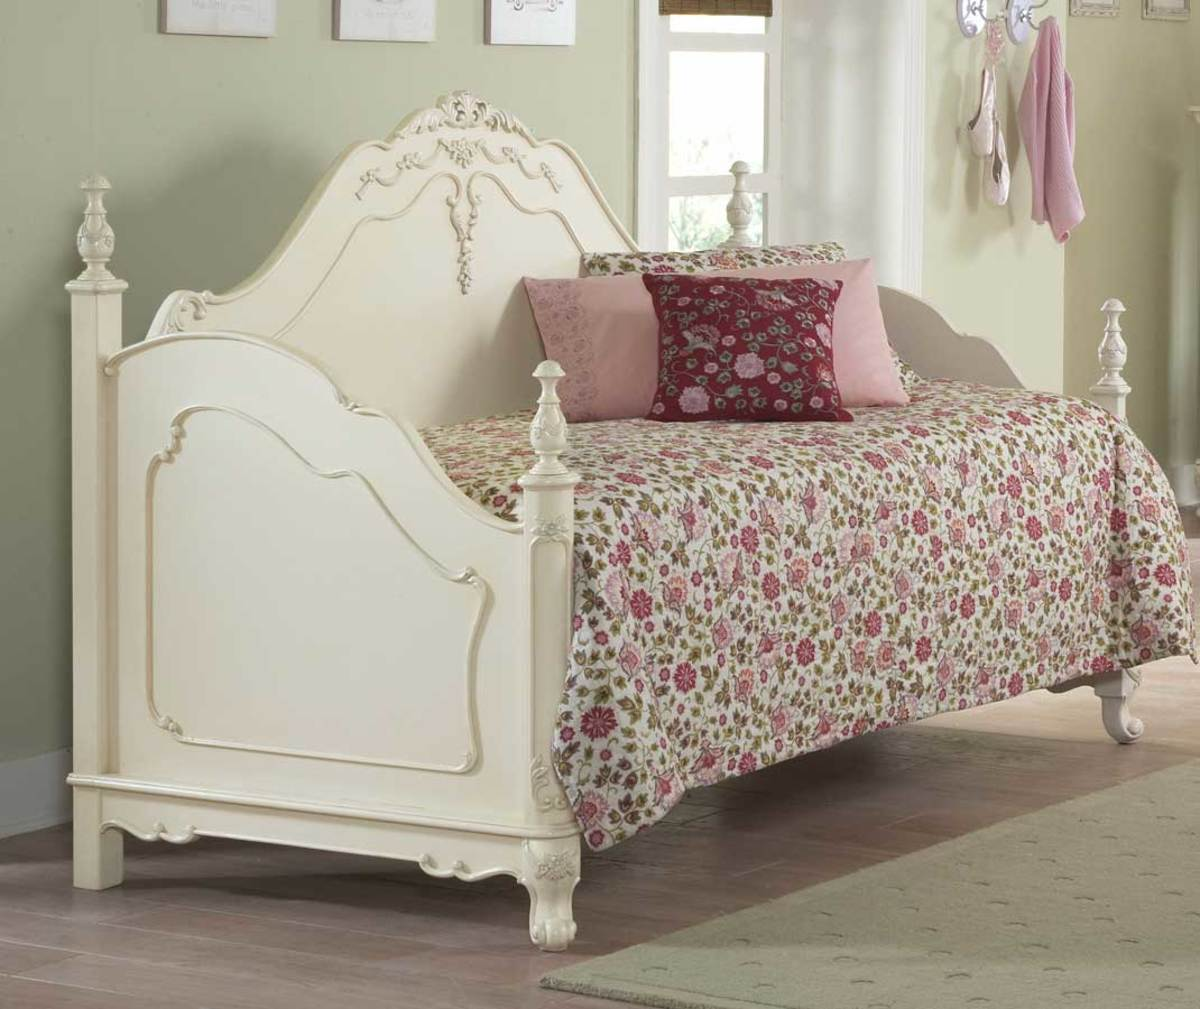 Daybed option in shabby chic - classic white Daybed Frame Option - Spare Bedroom Ideas